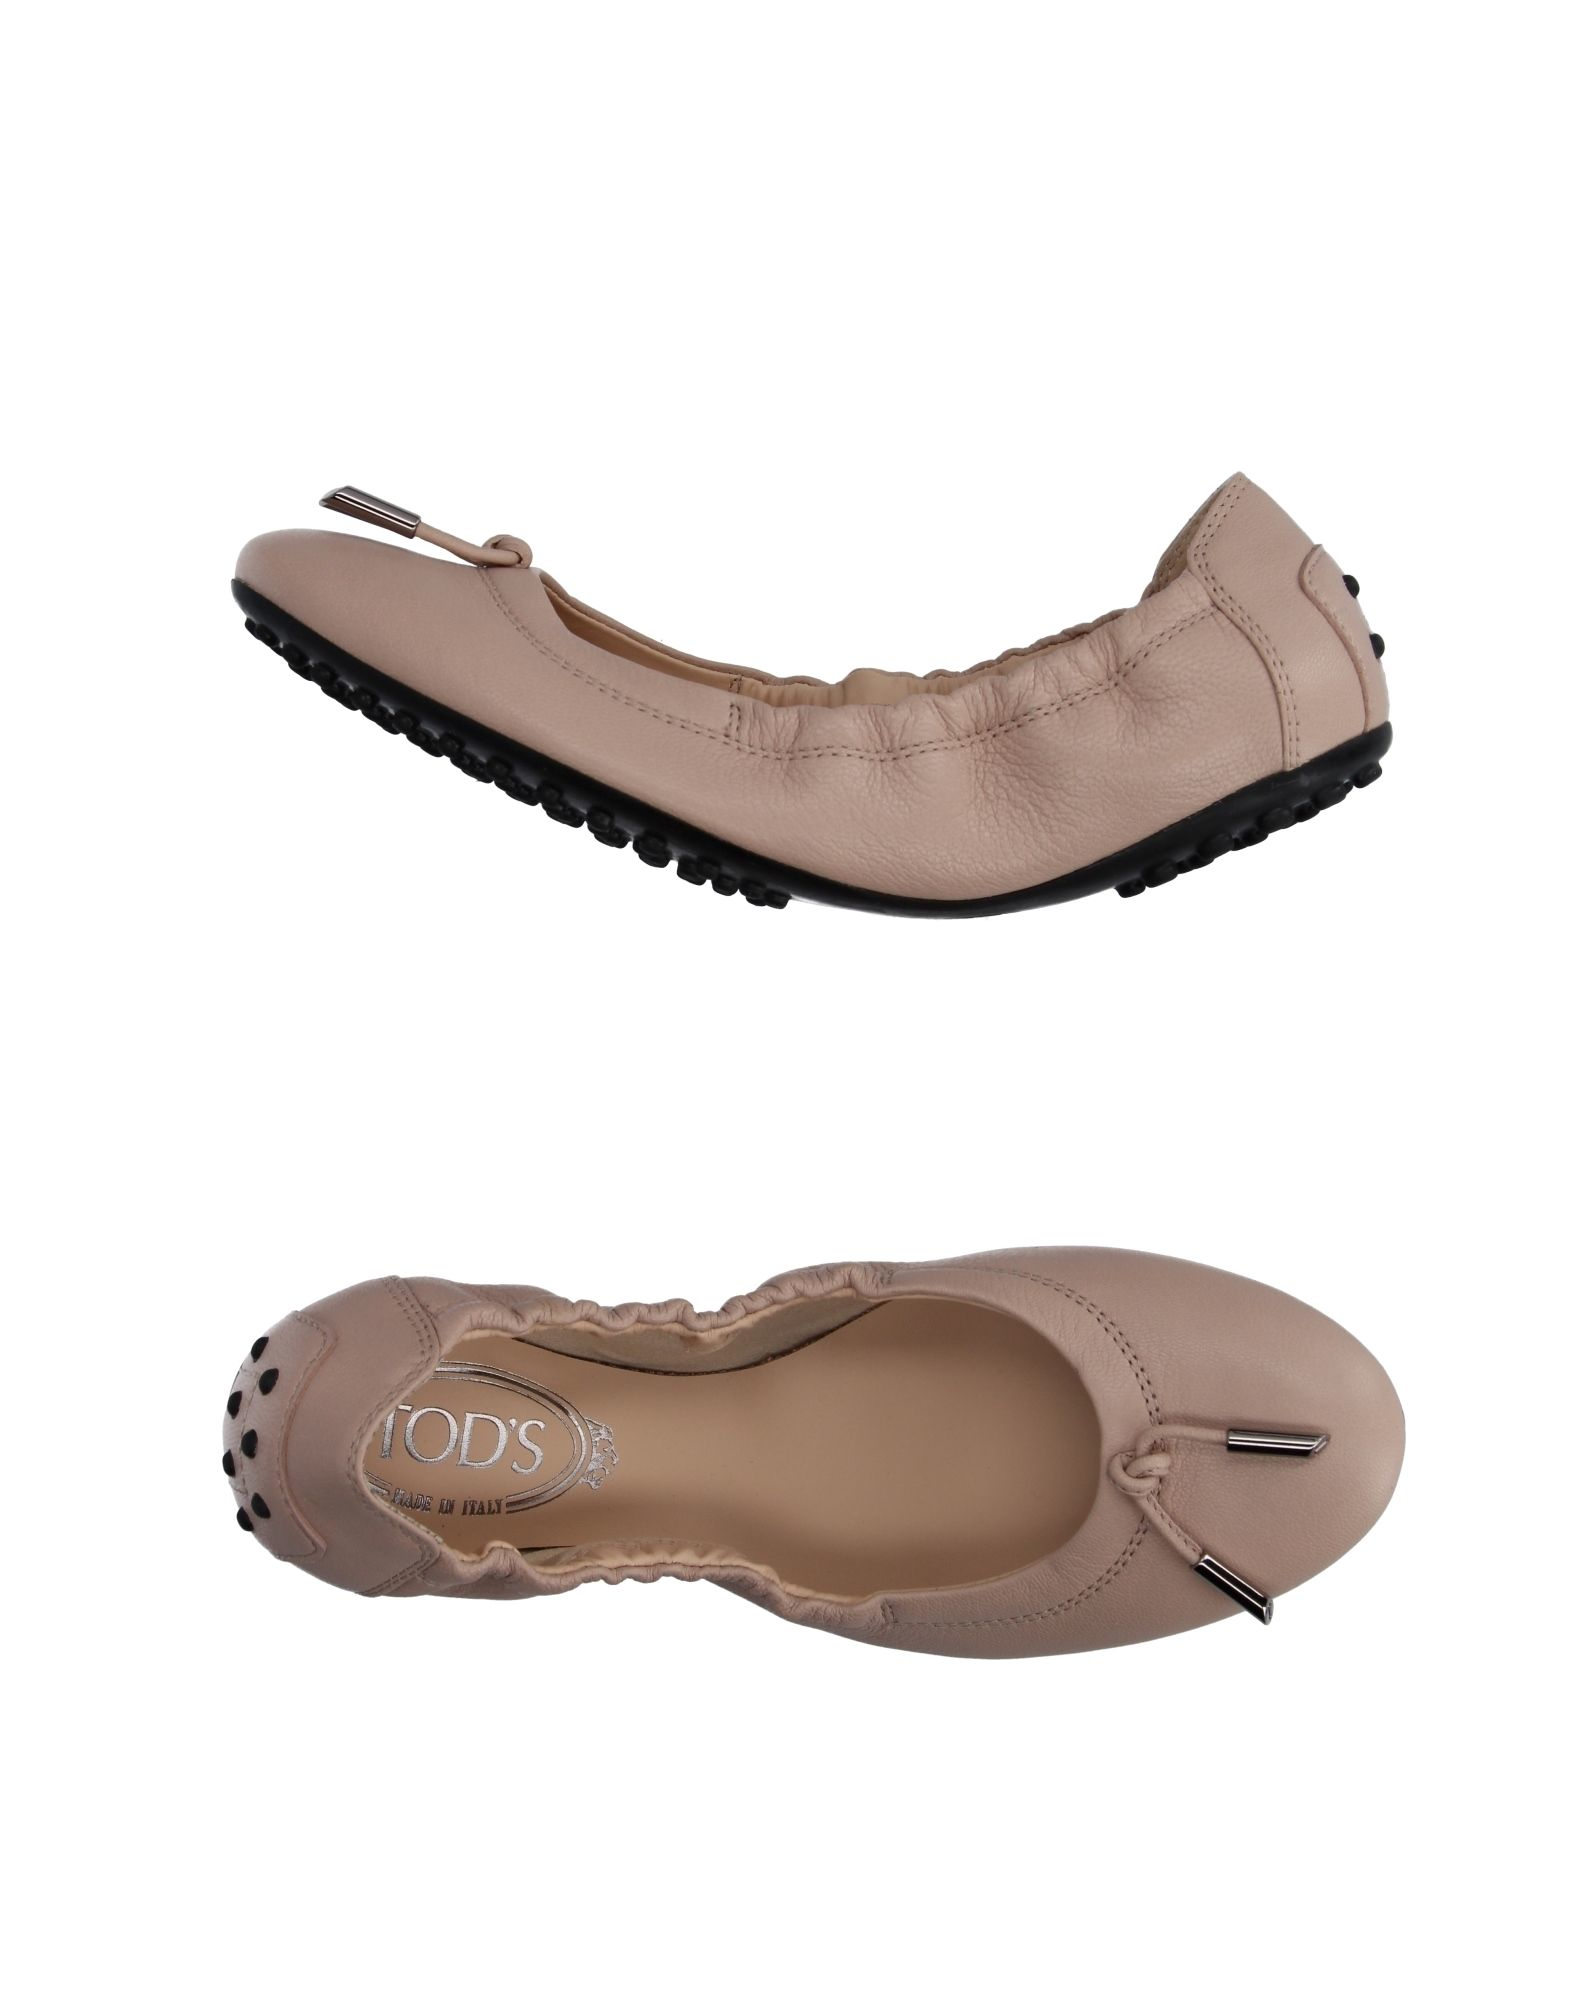 Find Beige women's flats at ShopStyle. Shop the latest collection of Beige women's flats from the most popular stores - all in one place.